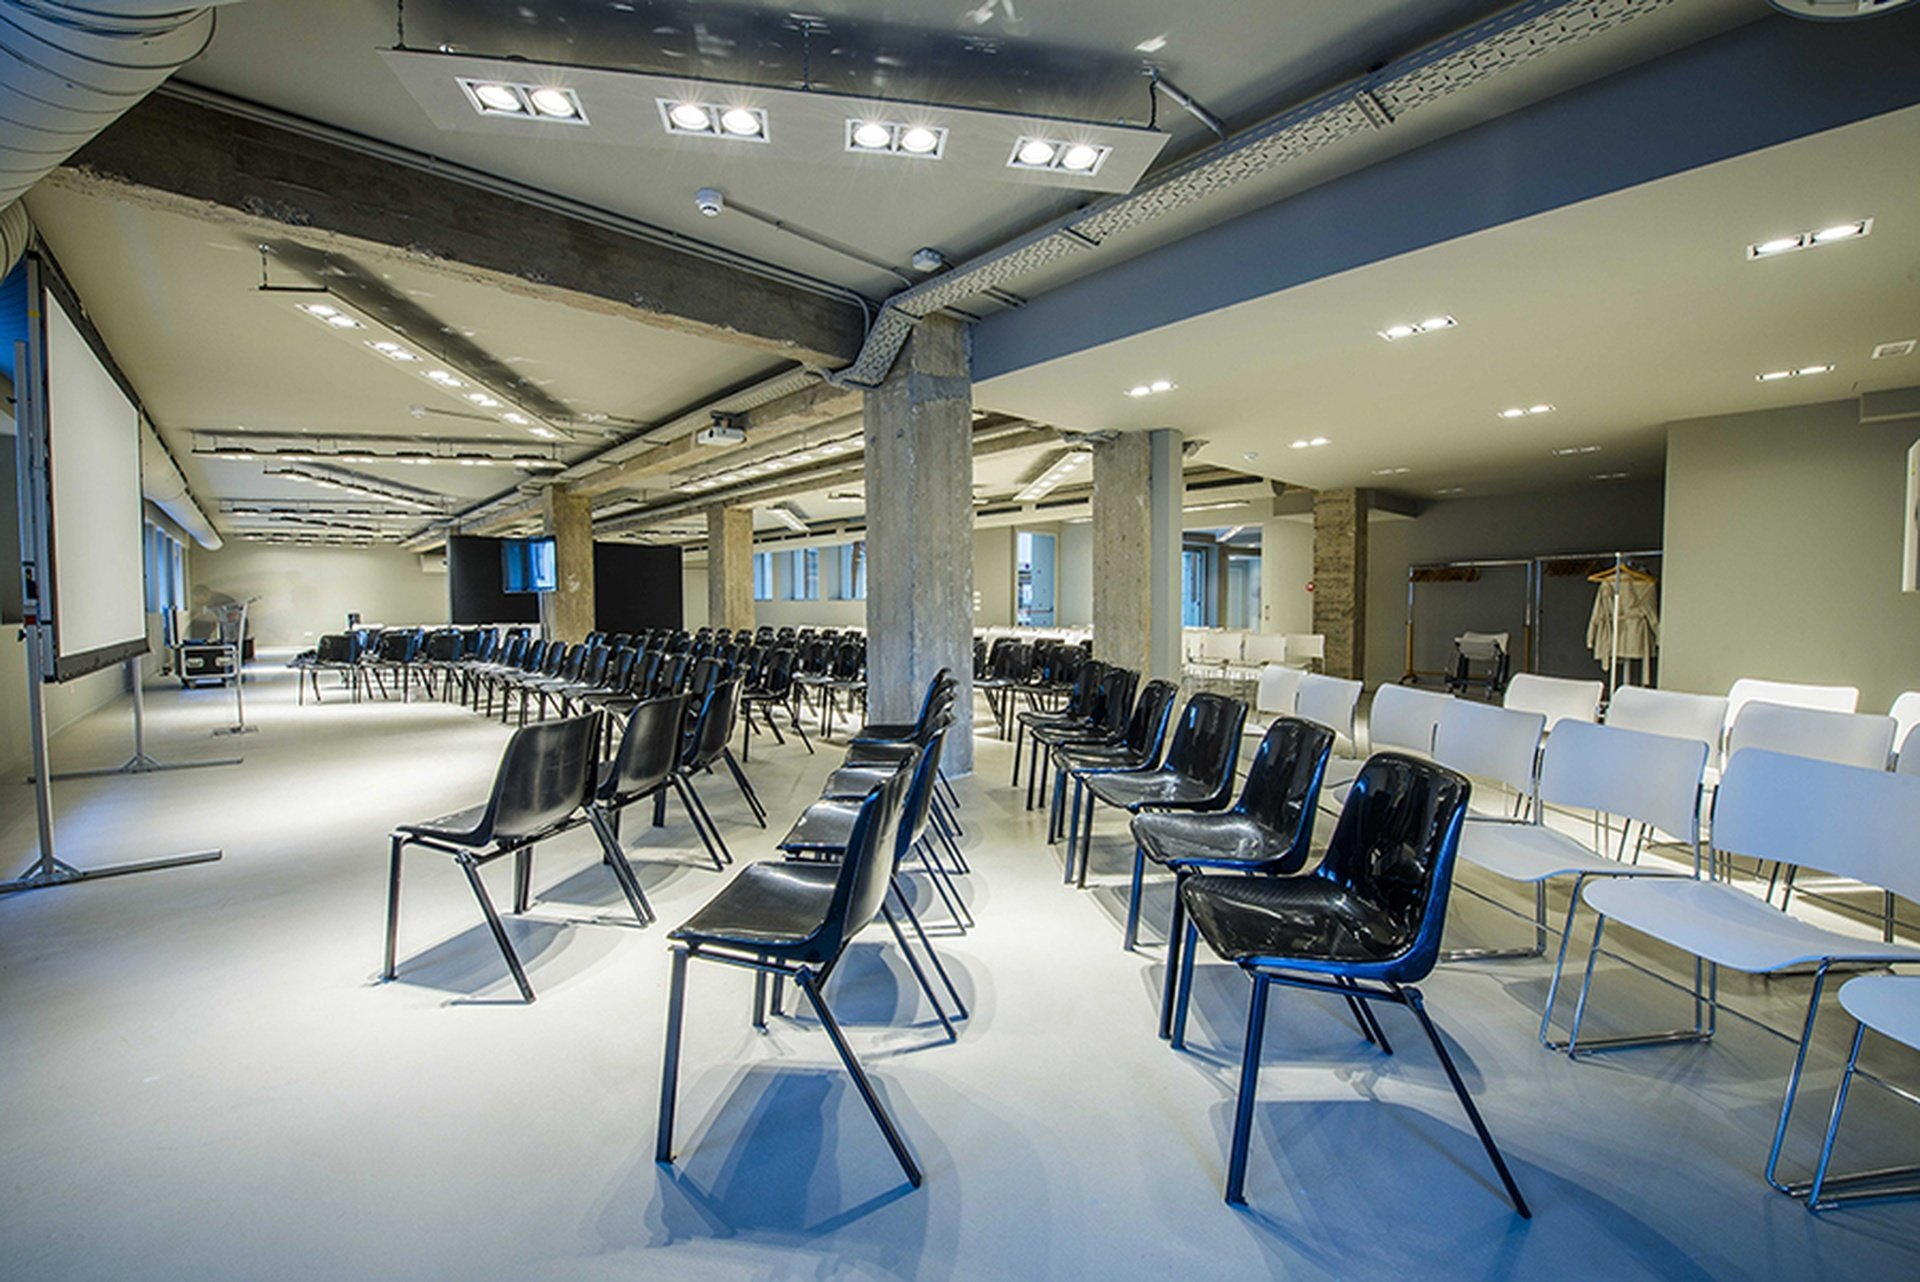 Rest of the World seminar rooms Meeting room Yimby Bilbao - Yes image 0